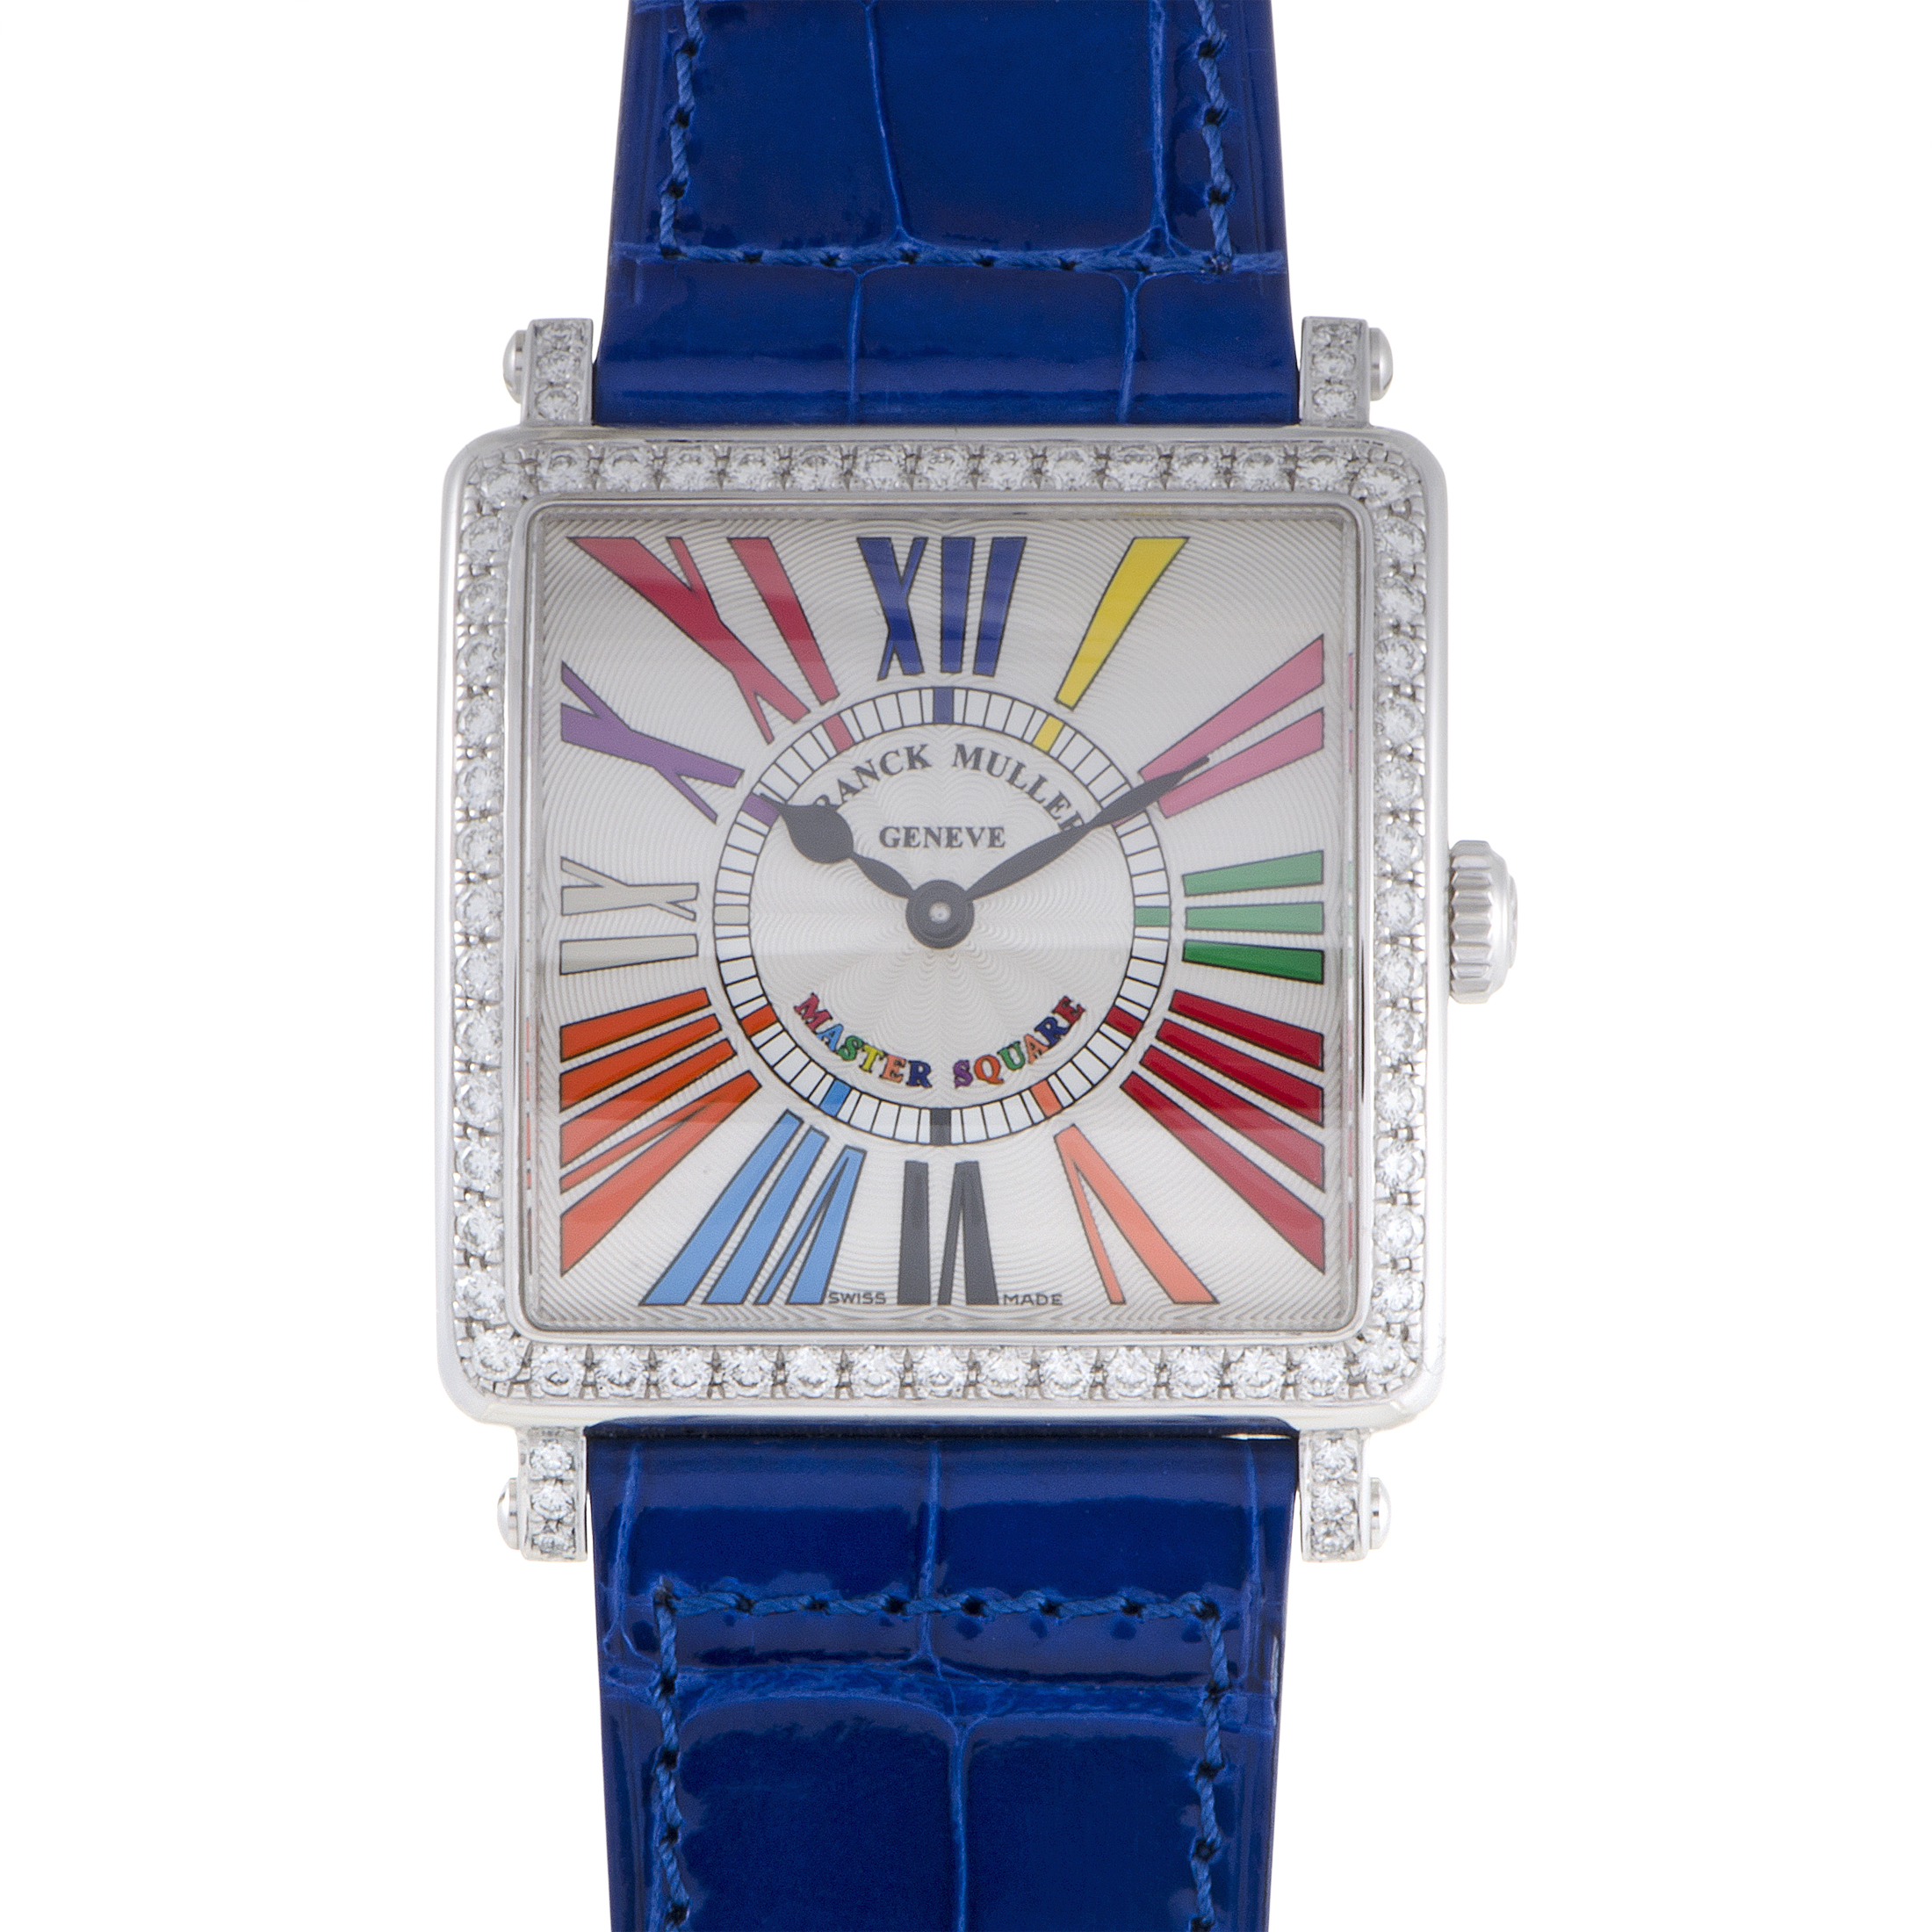 Master Square Womens Quartz Watch 6002MQZD1RCOLDRBLACBLUE